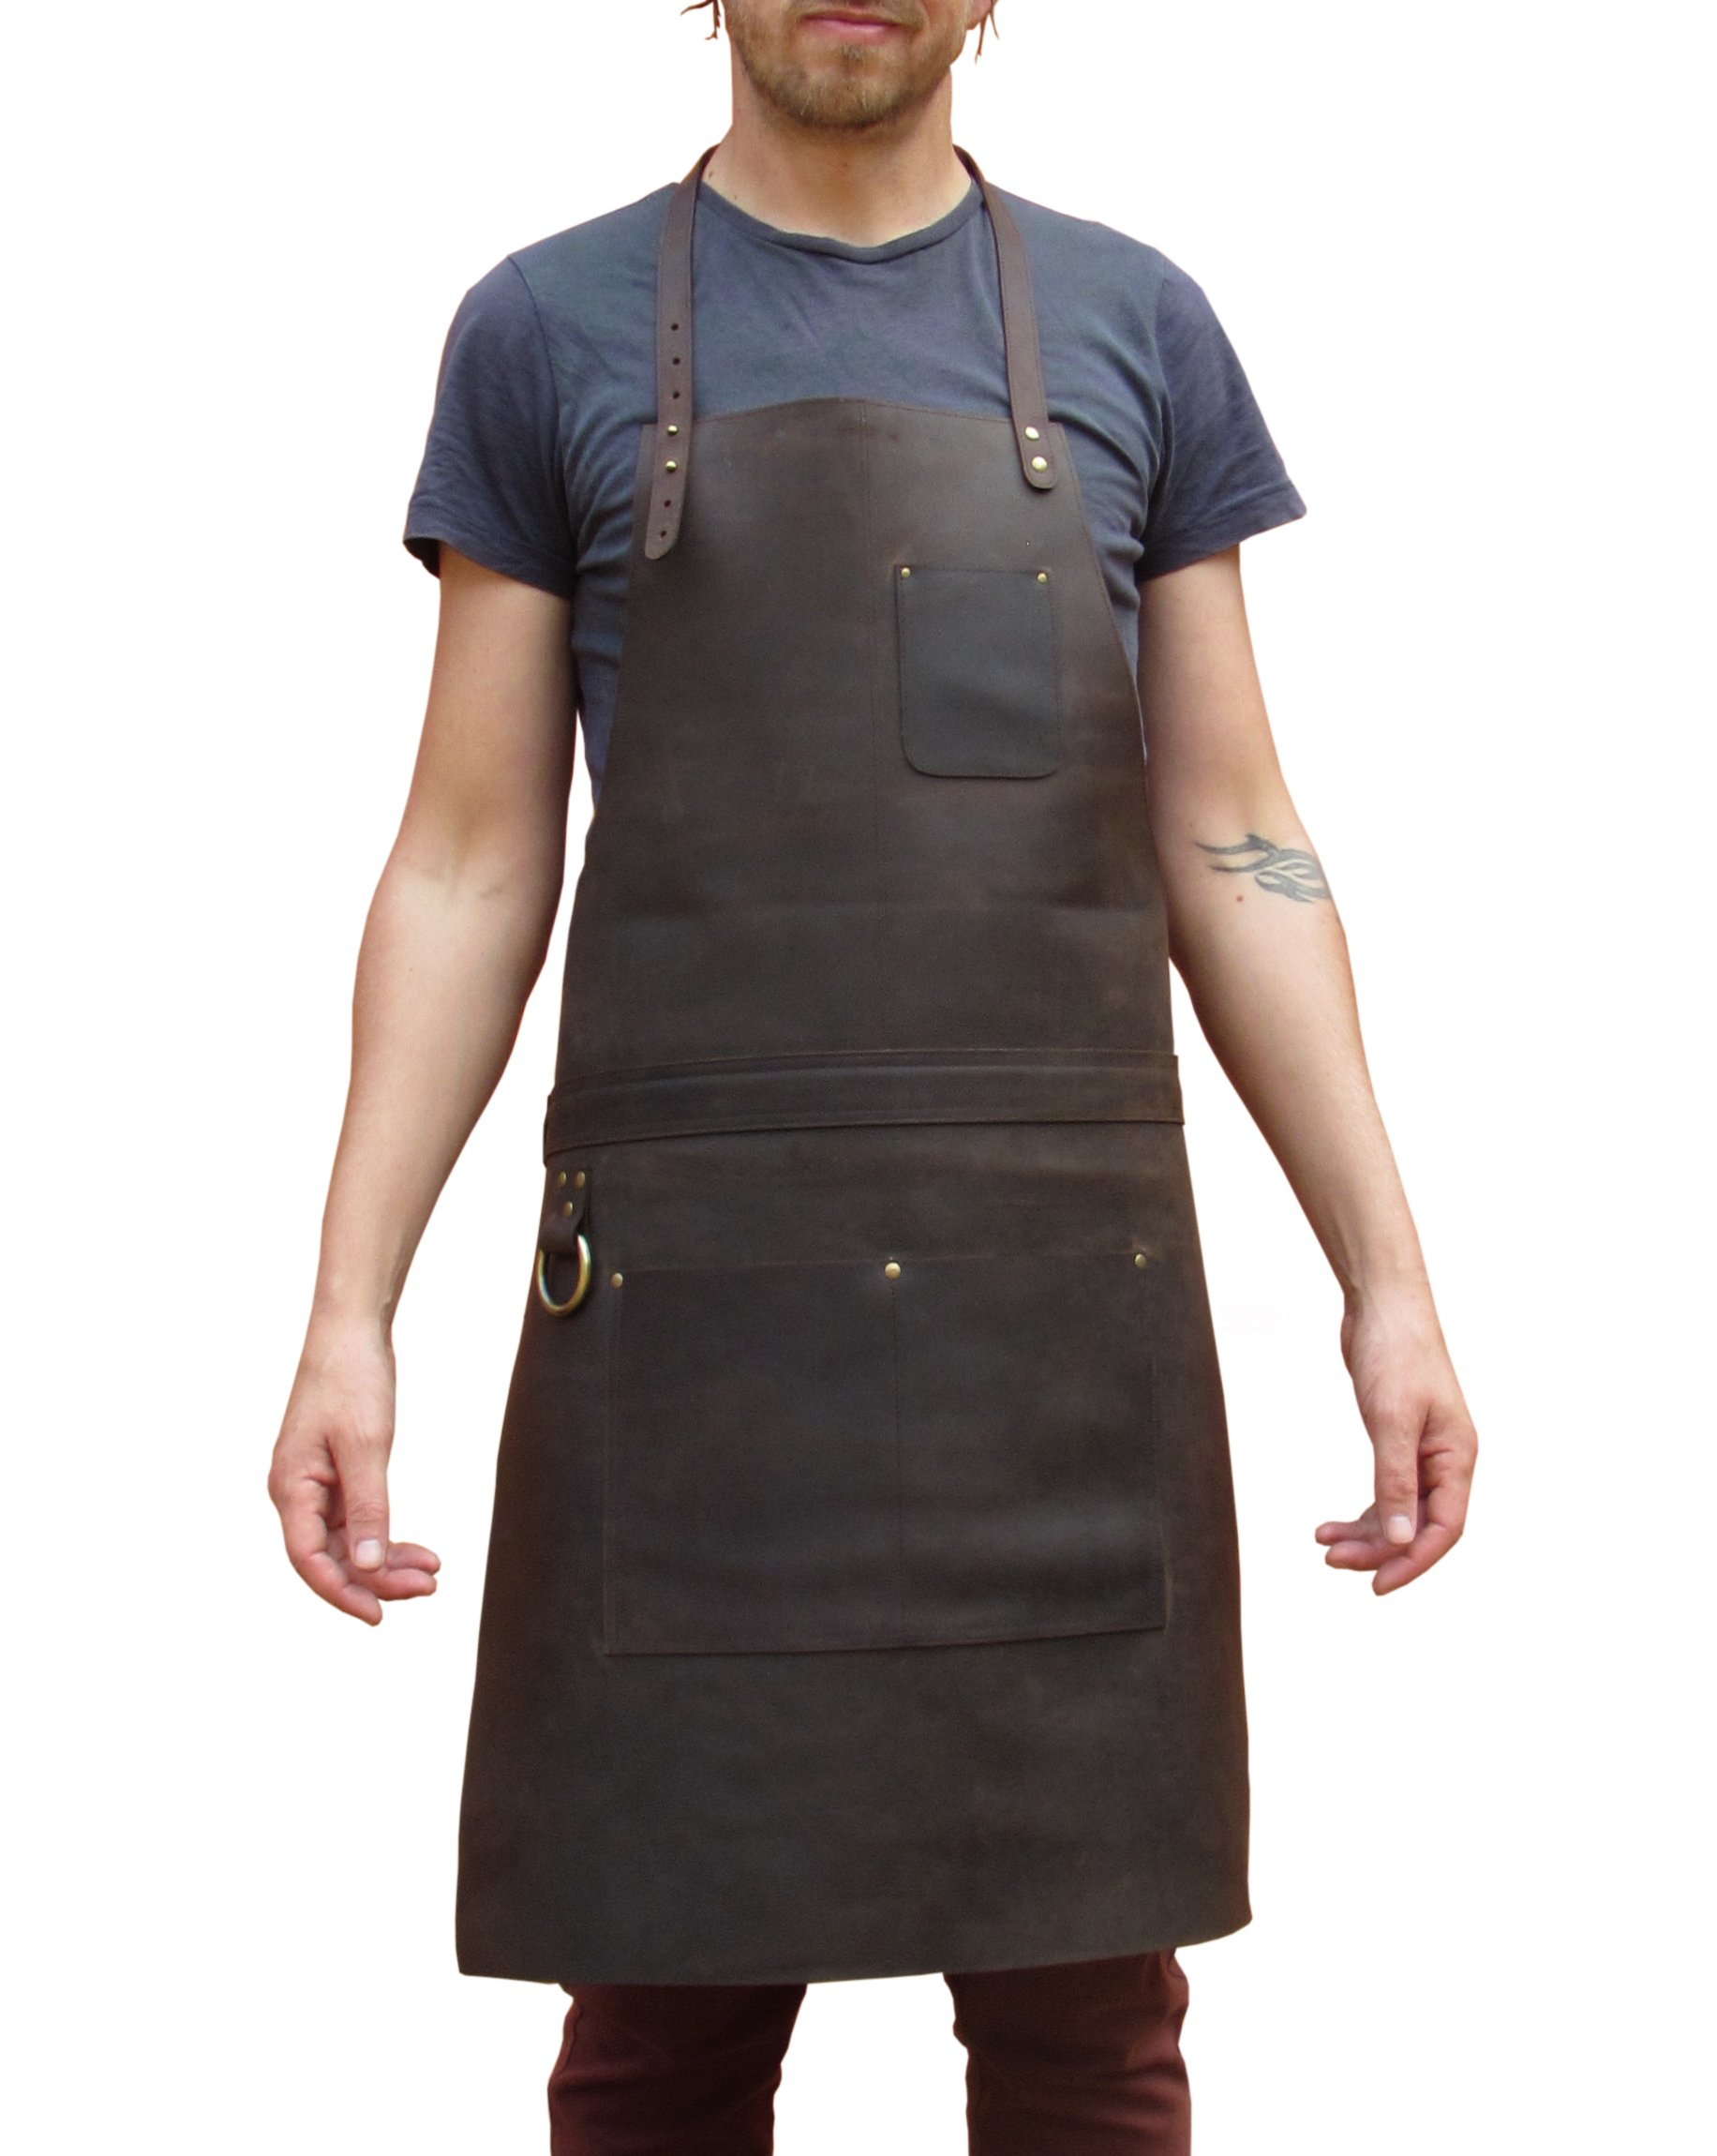 One Leaf Leather Work Apron (Chef, Butcher, Metalworker, Carpenter) - Tirel Deluxe (Brass Hardware)